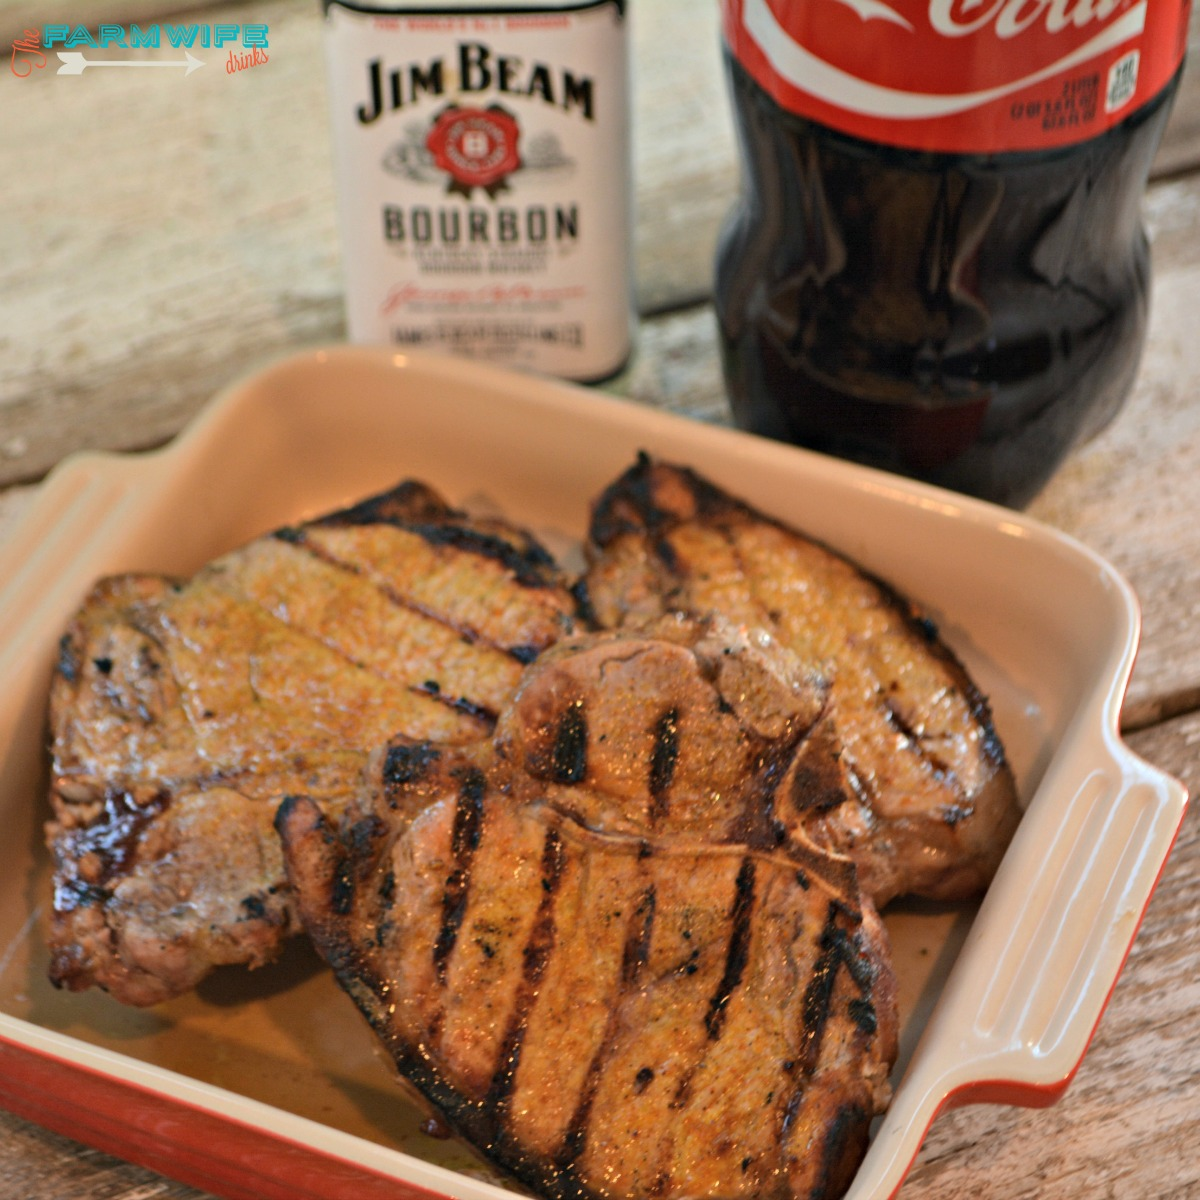 Bourbon and Coke Pork Chops are as tasty as the popular cocktail. This easy combination is recipe for juicy, tender pork chops.